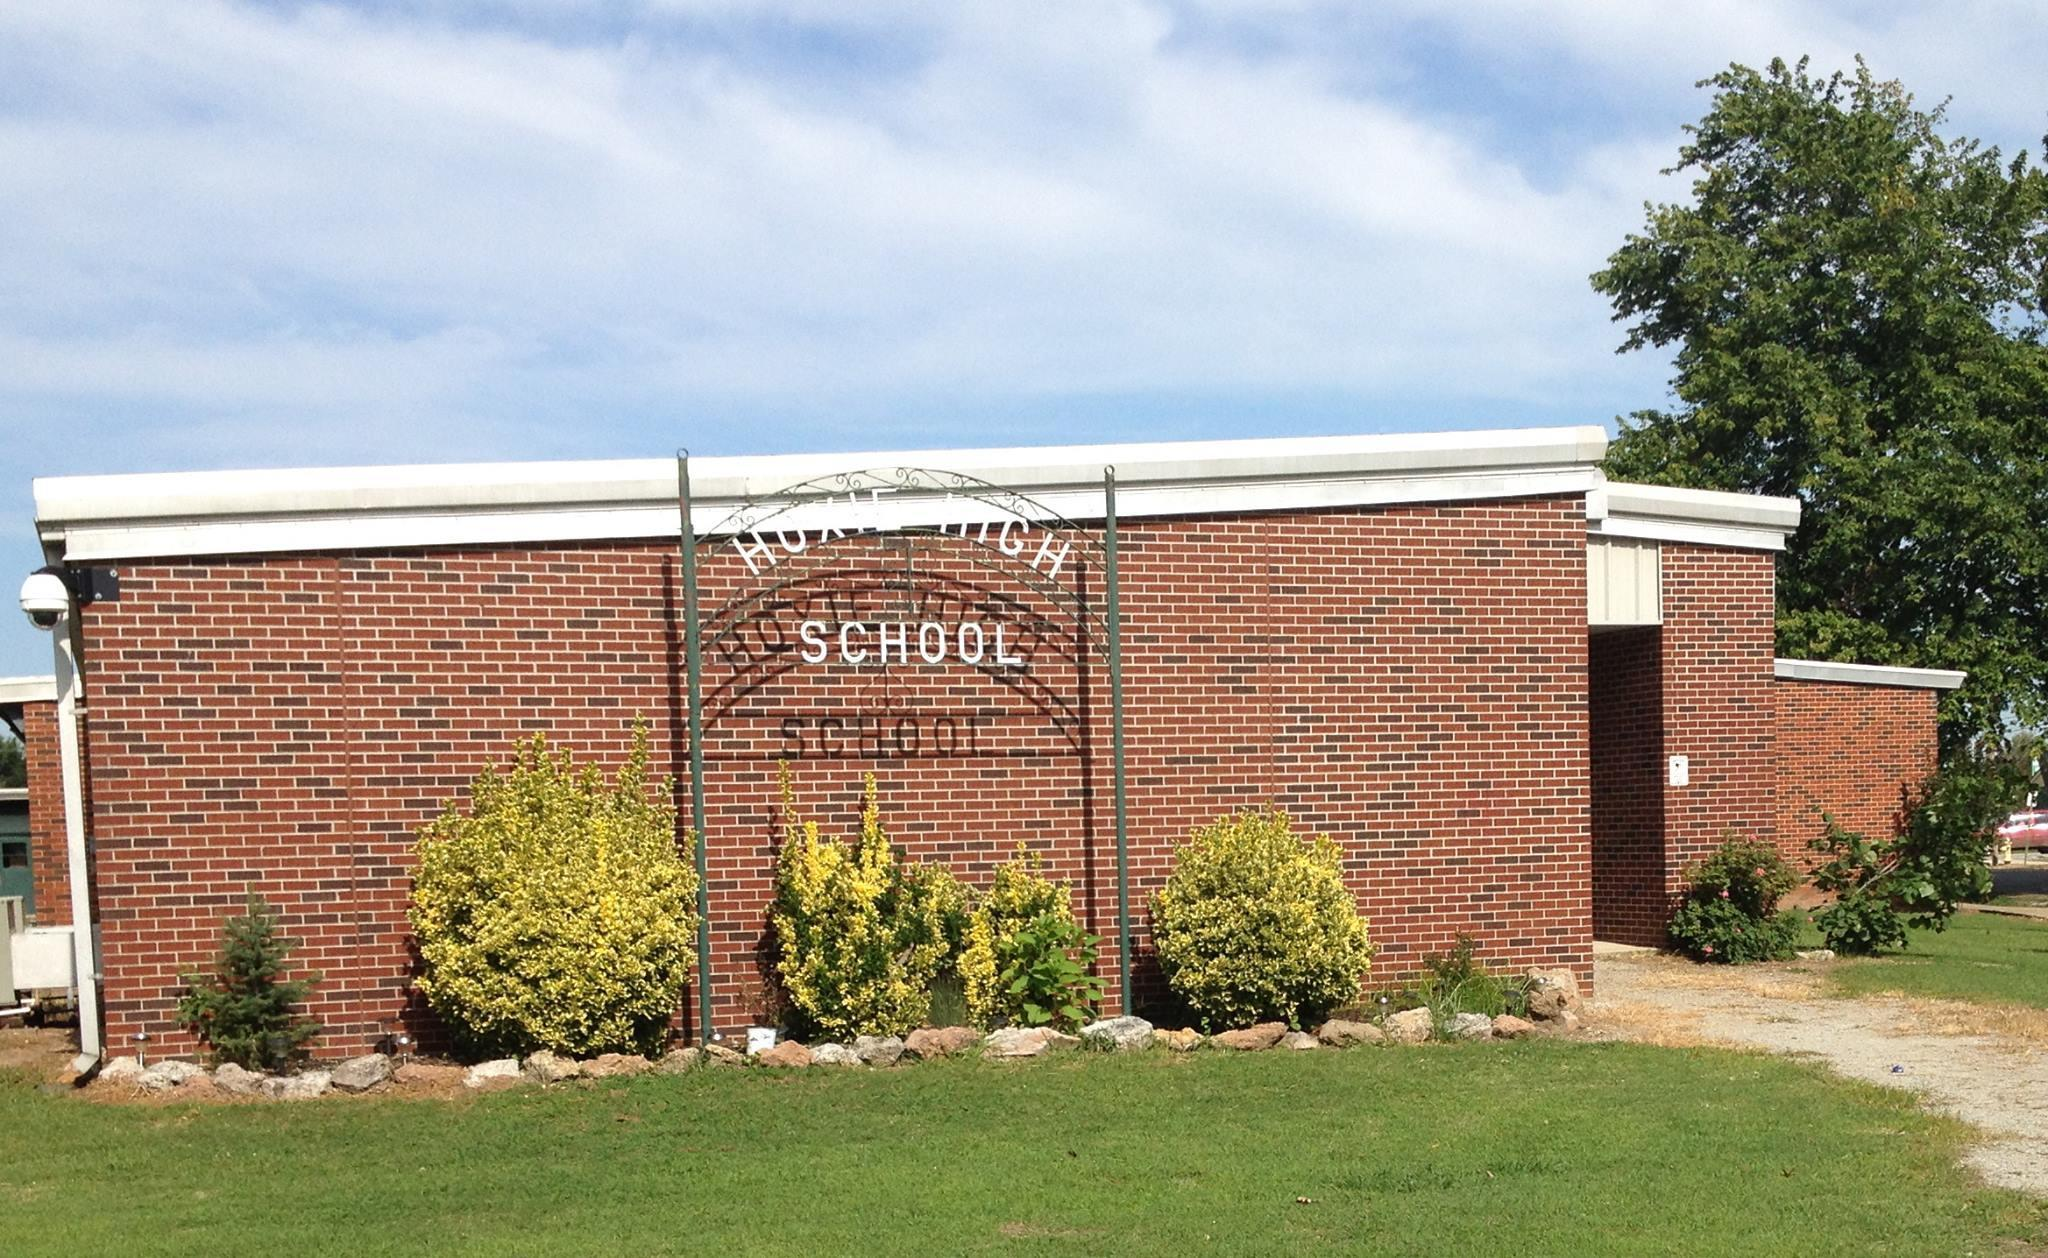 Hoxie High School Sign